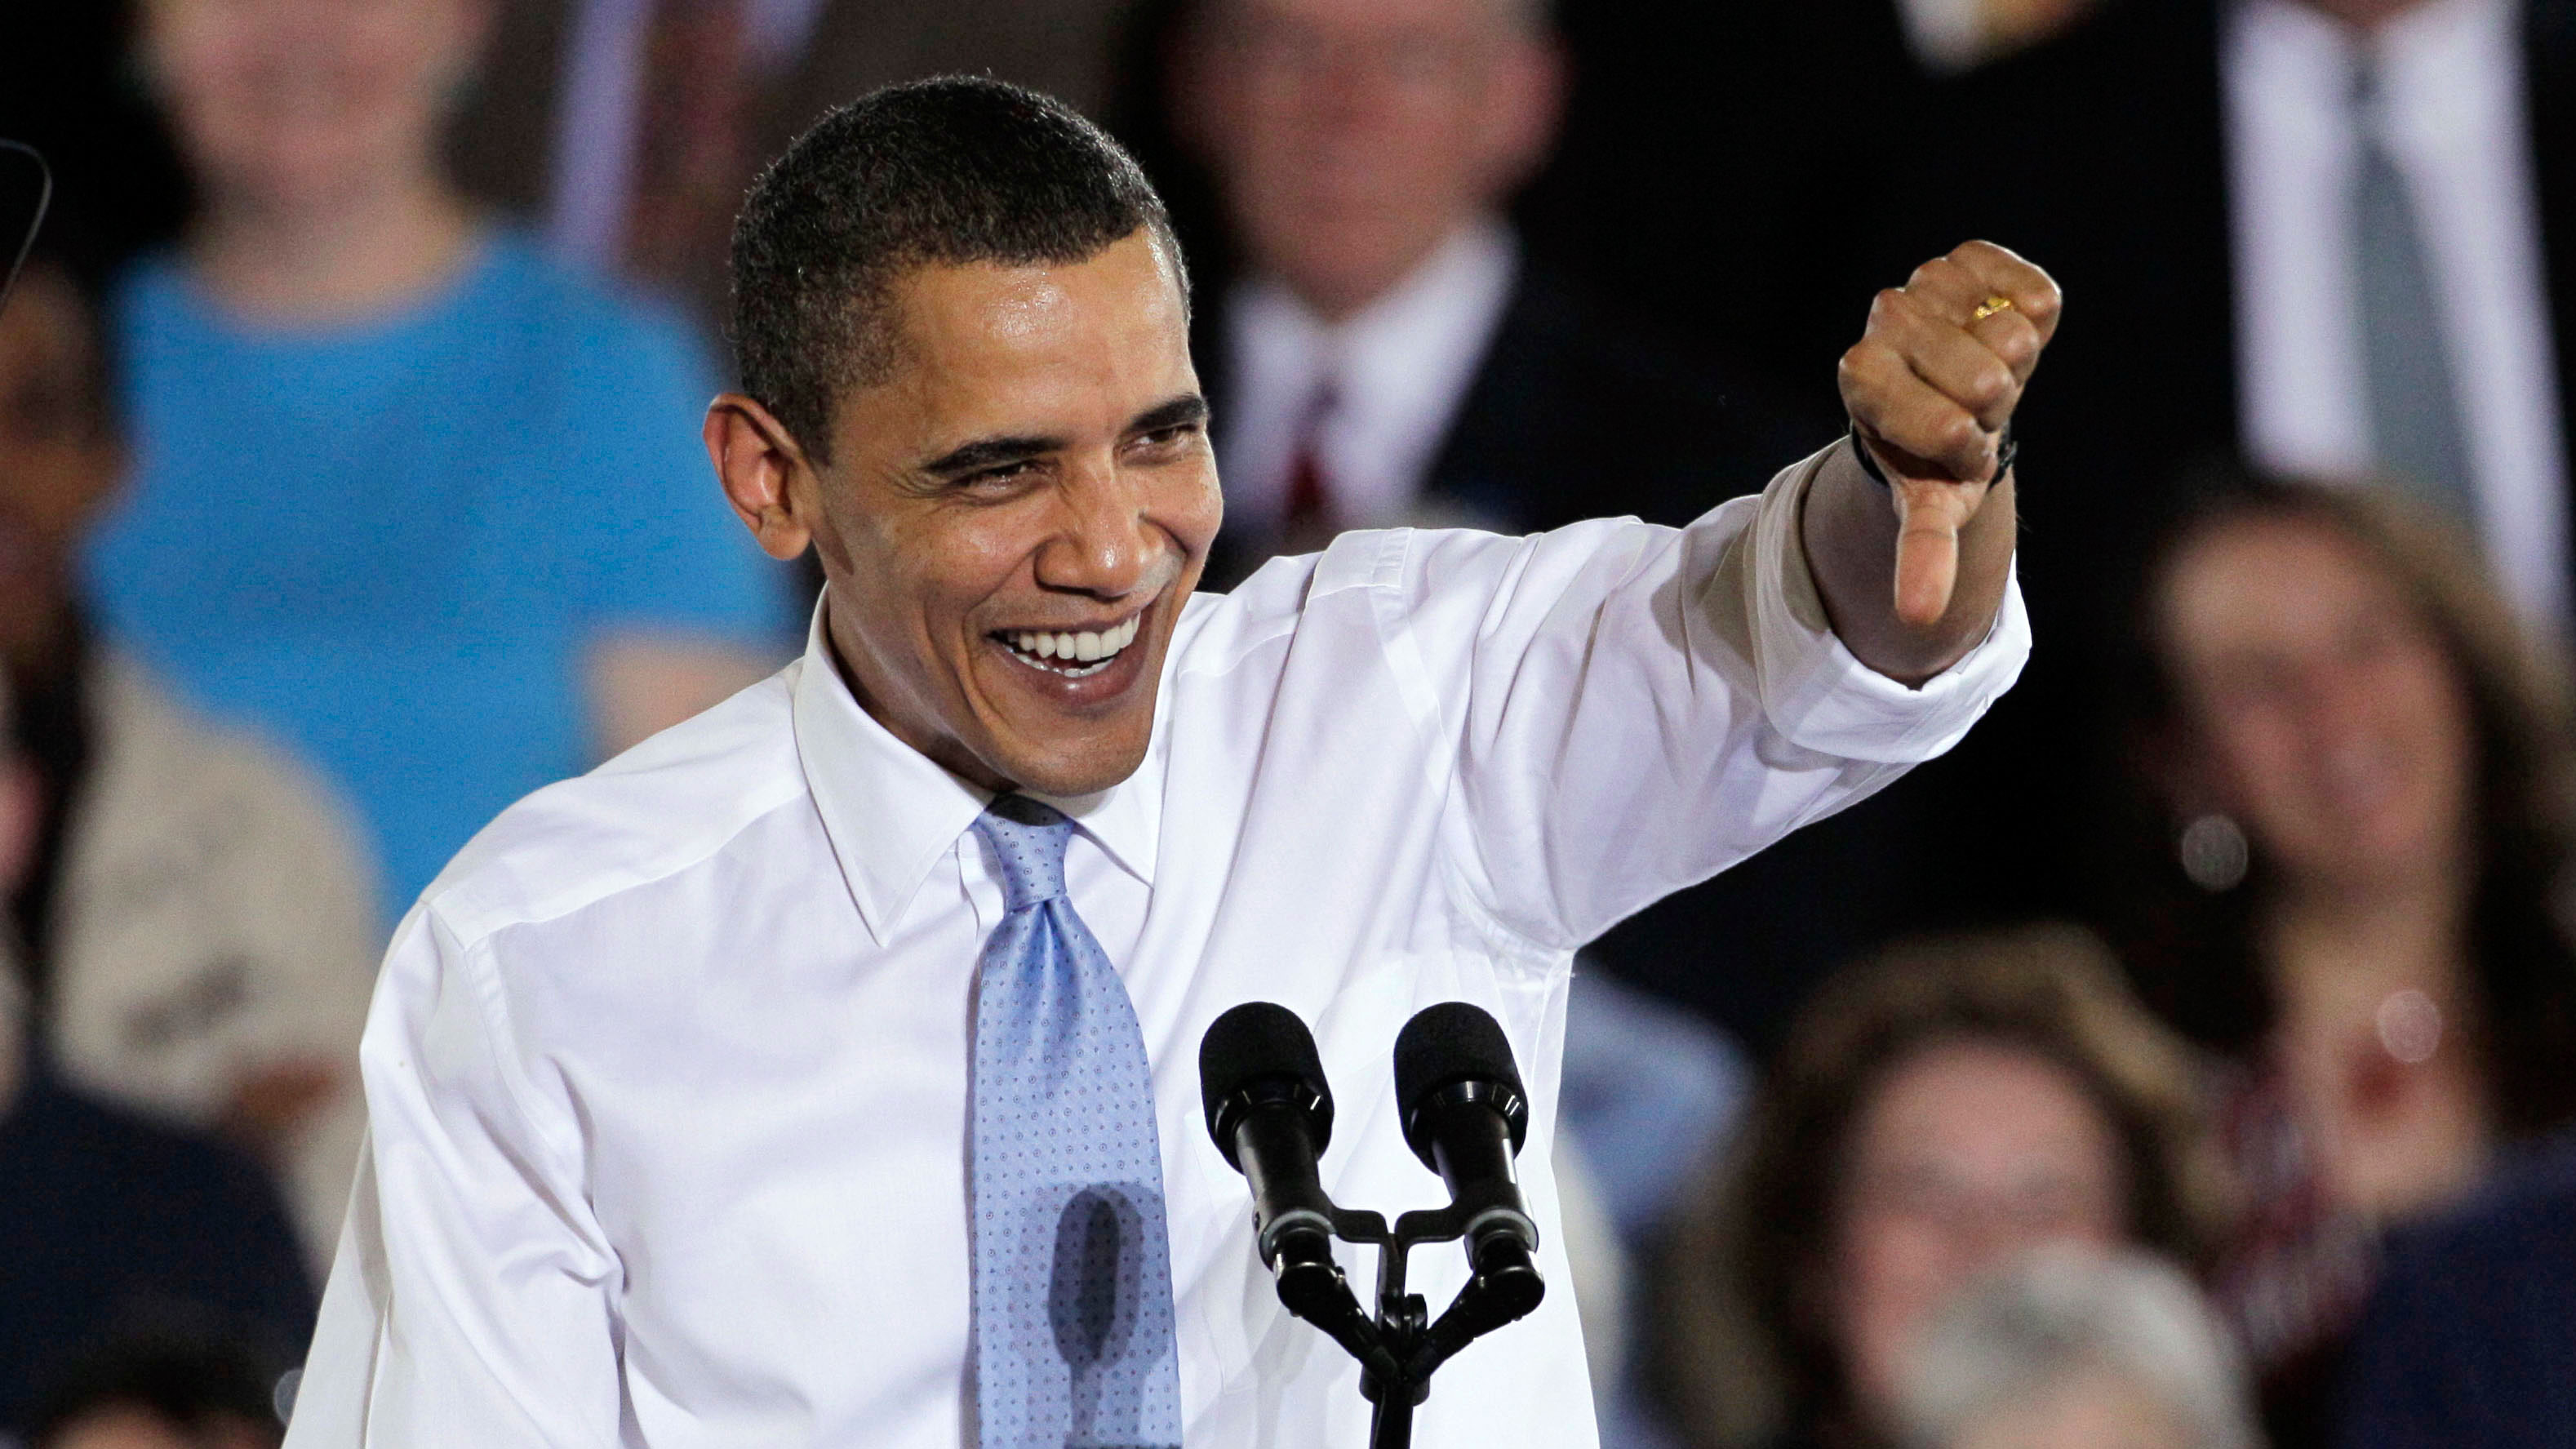 President Barack Obama gives a thumbs-down gesture while speaking on health insurance reform Thursday, April 1, 2010, at the Portland Expo in Portland, Maine.